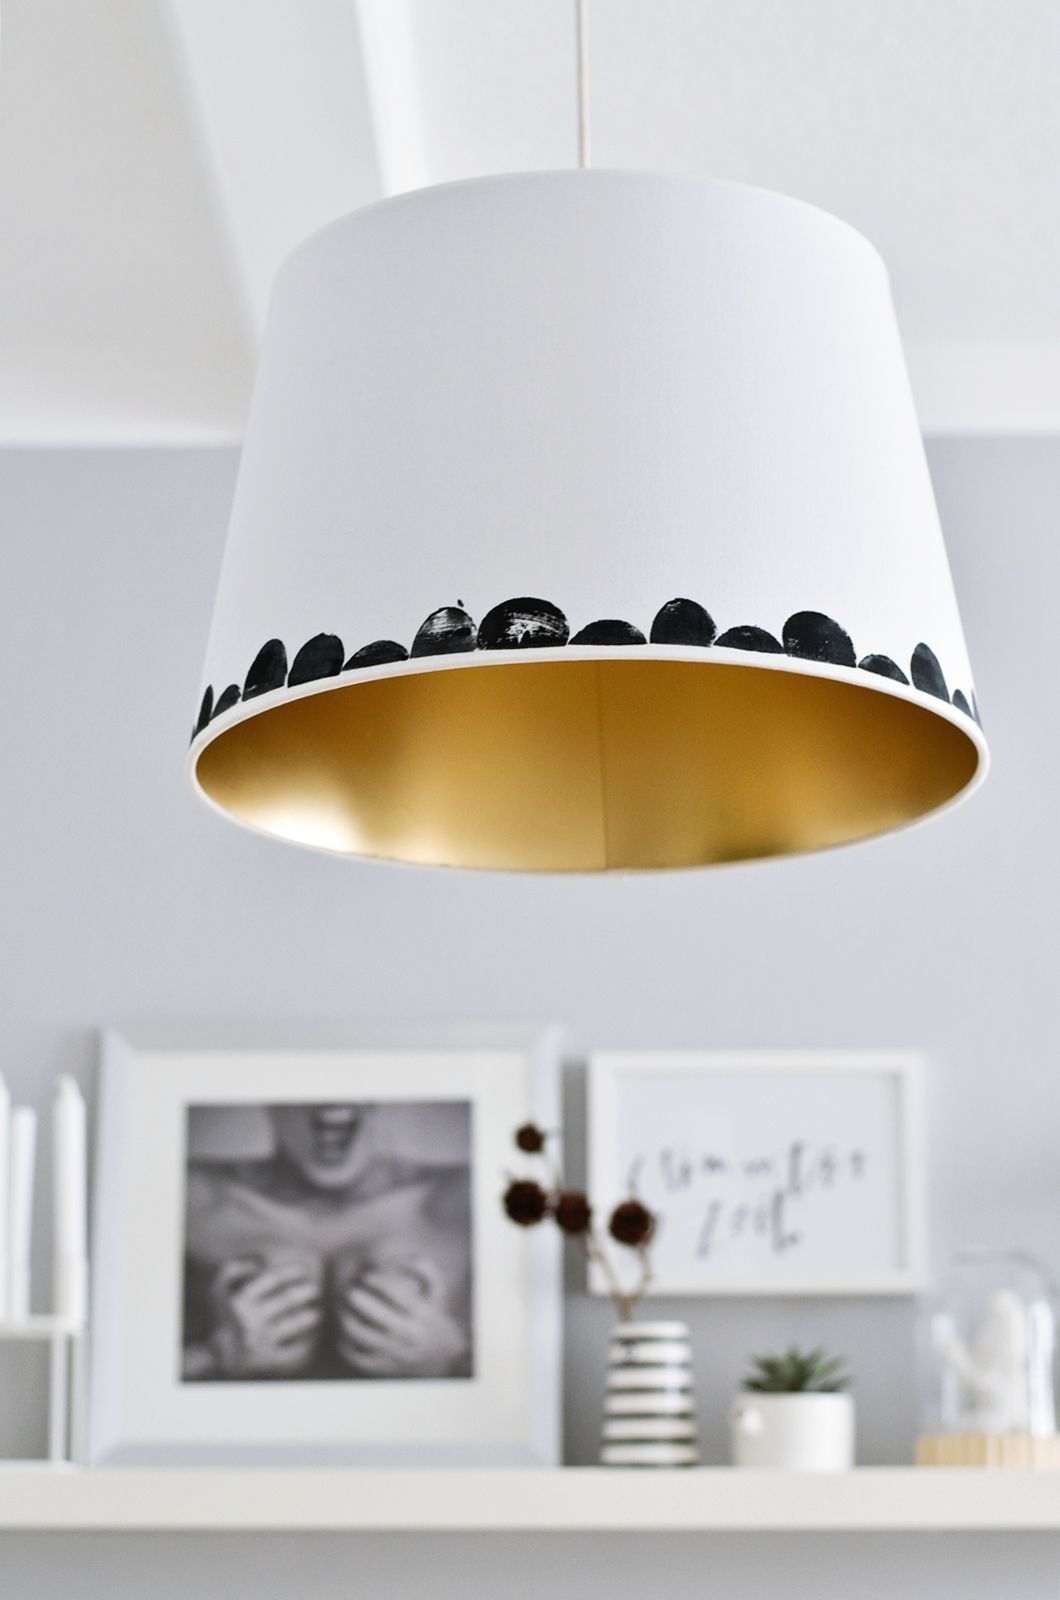 Ikea Hack In 2019 Diy Pinterest Ikea Lamp Shade Ikea Lamp Und